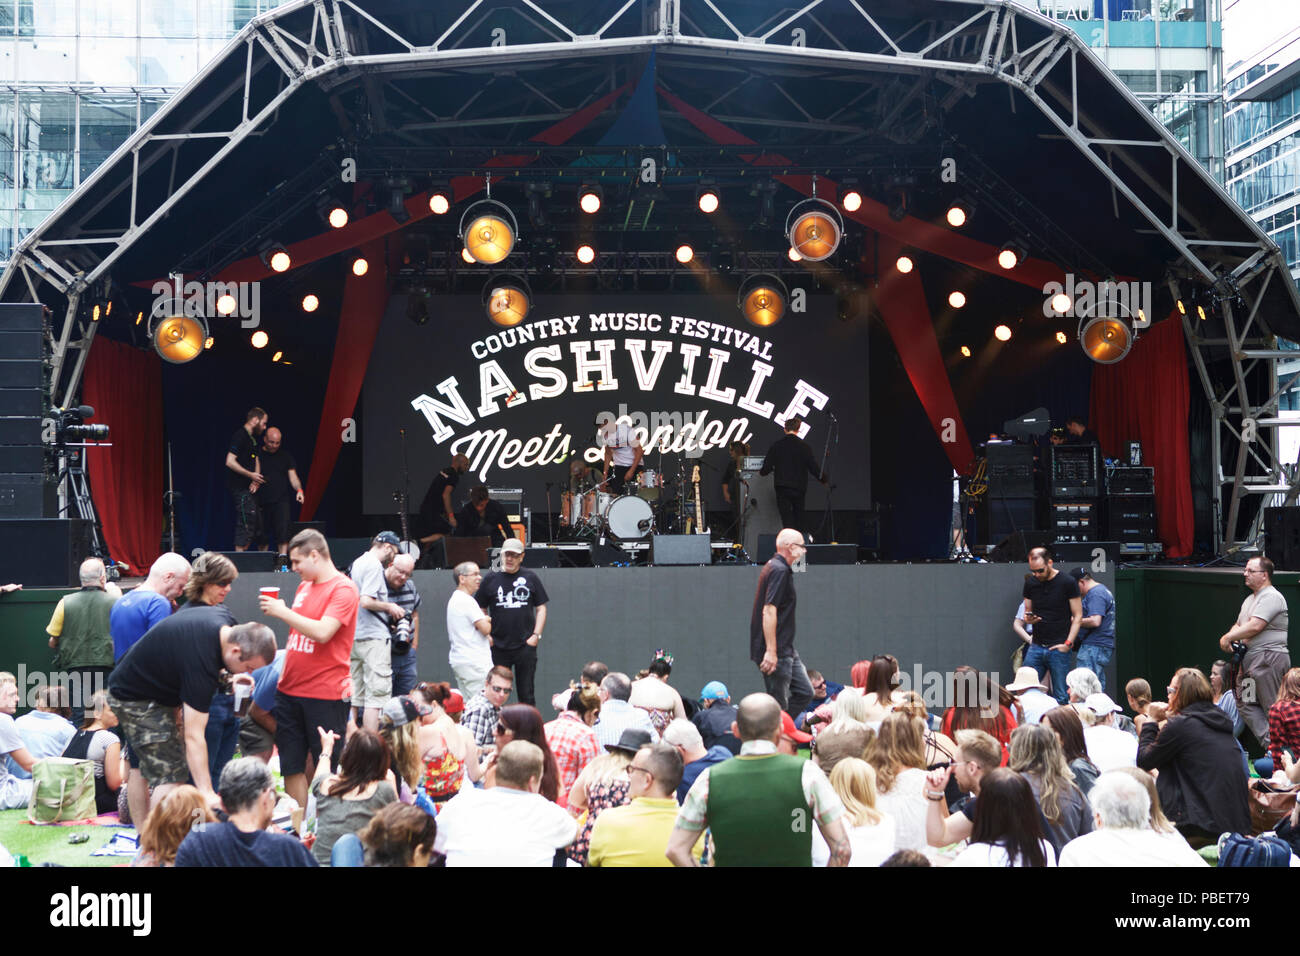 London UK, 28th July, 2018. A Country music festival - Nashville Meets London - on the 28th and 29th July at Canary Wharf. Stock Photo